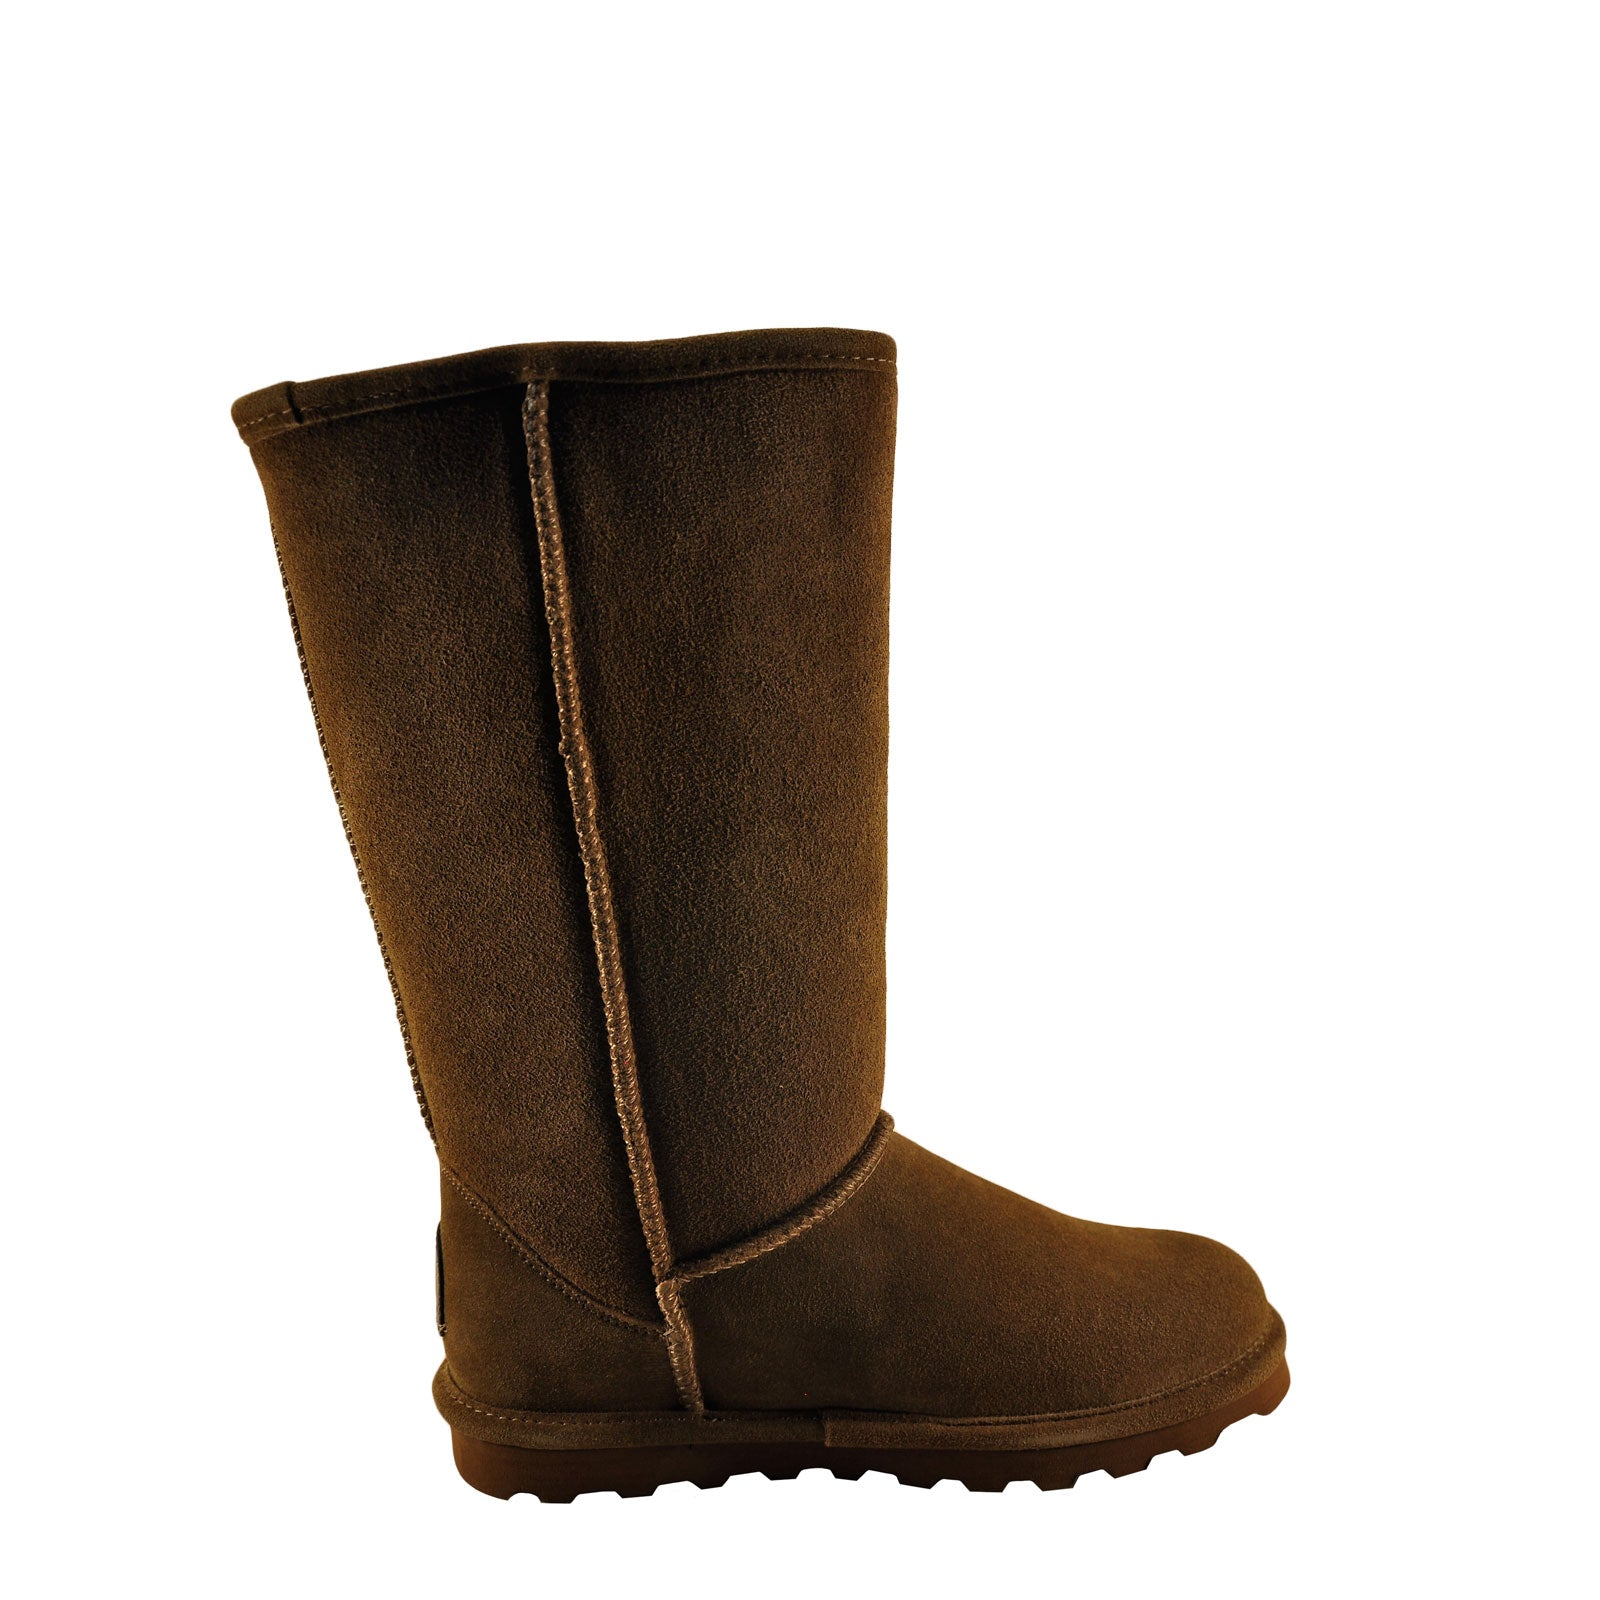 Bearpaw Elle Tall -Hickory